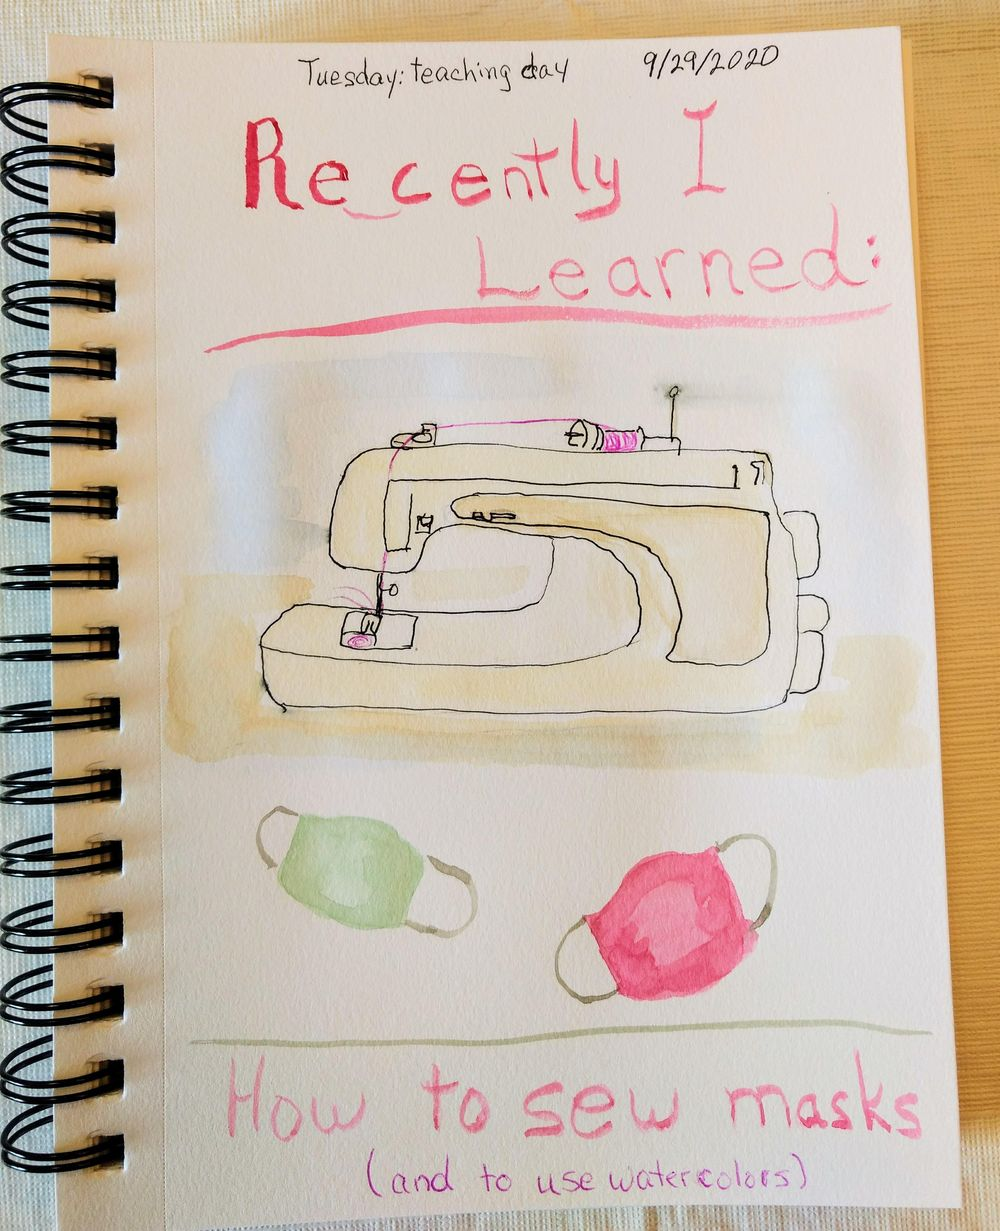 Creating a habit. Maybe ;) - image 13 - student project